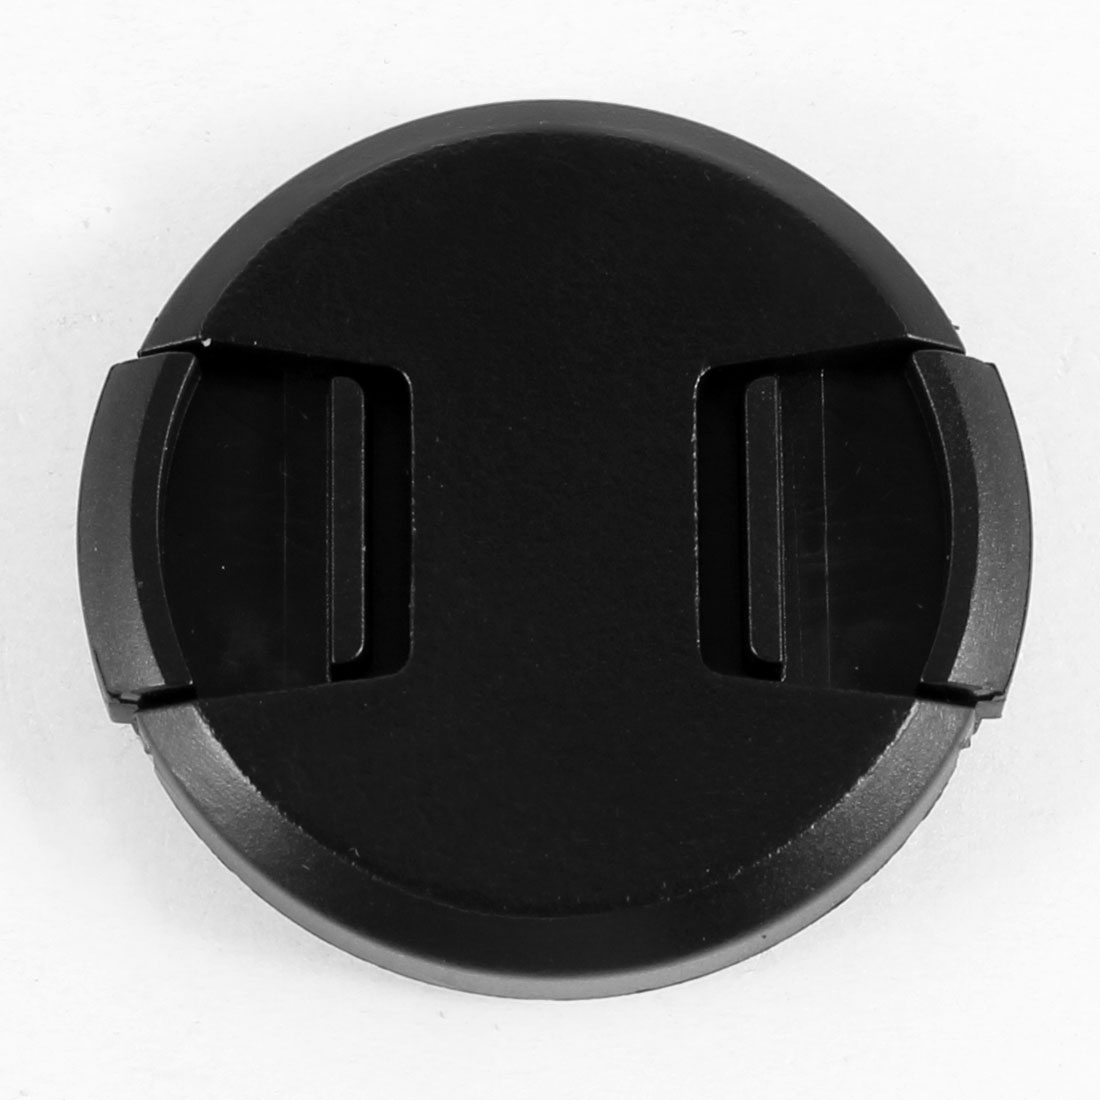 UXCELL 40.5Mm Plastic Clip On Front Lens Cap Cover Black For Digital Camera